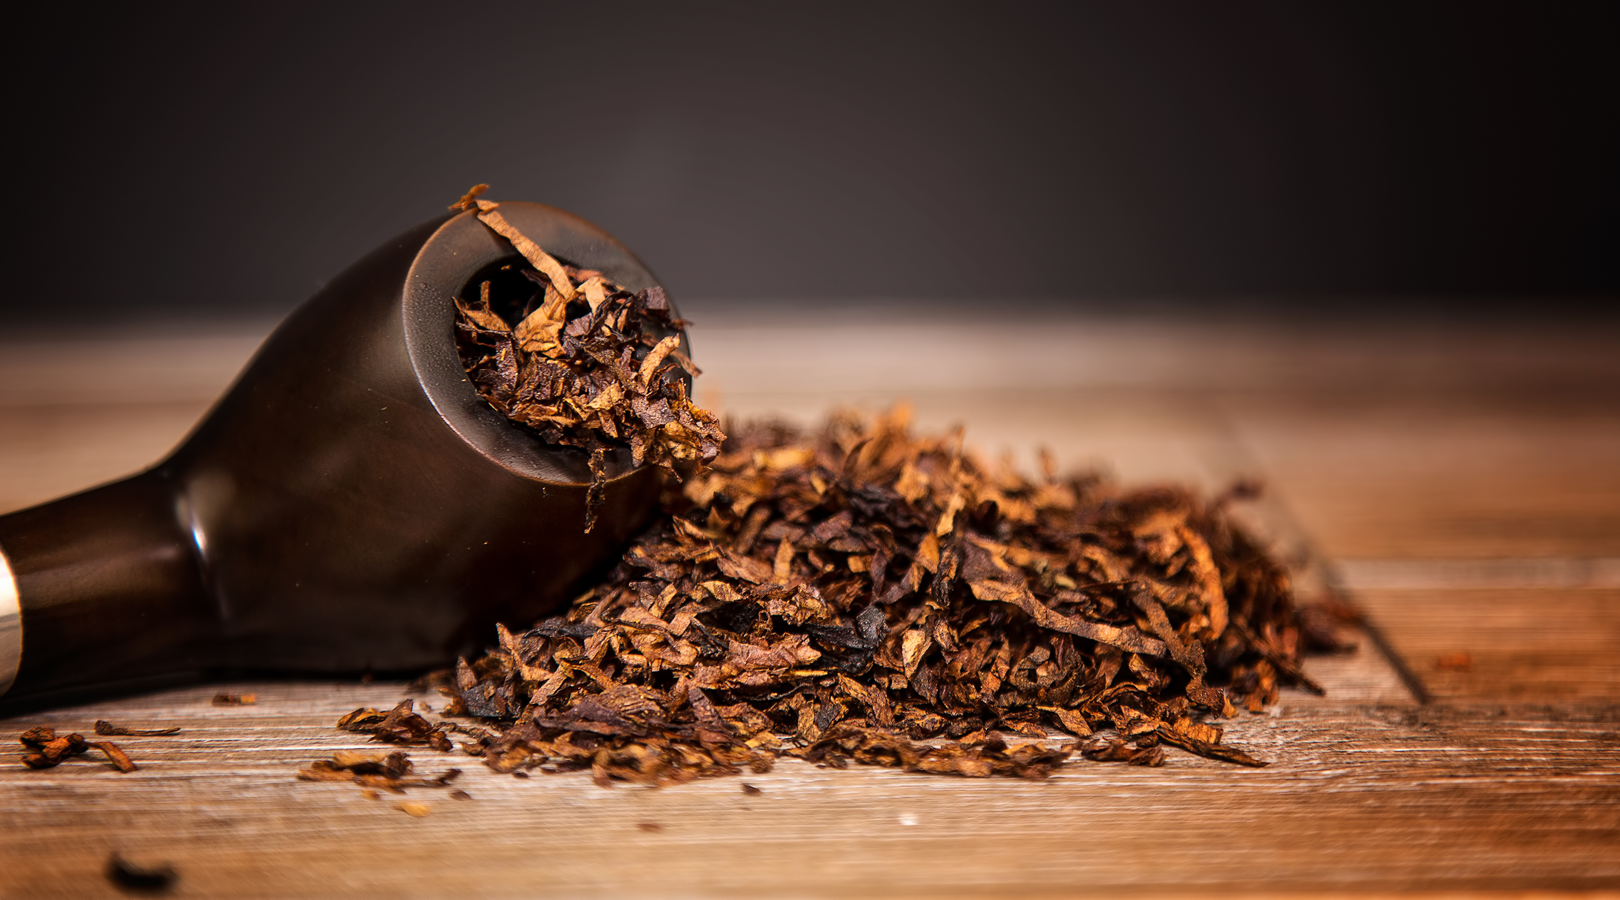 Can You Ship Tobacco in the Mail?